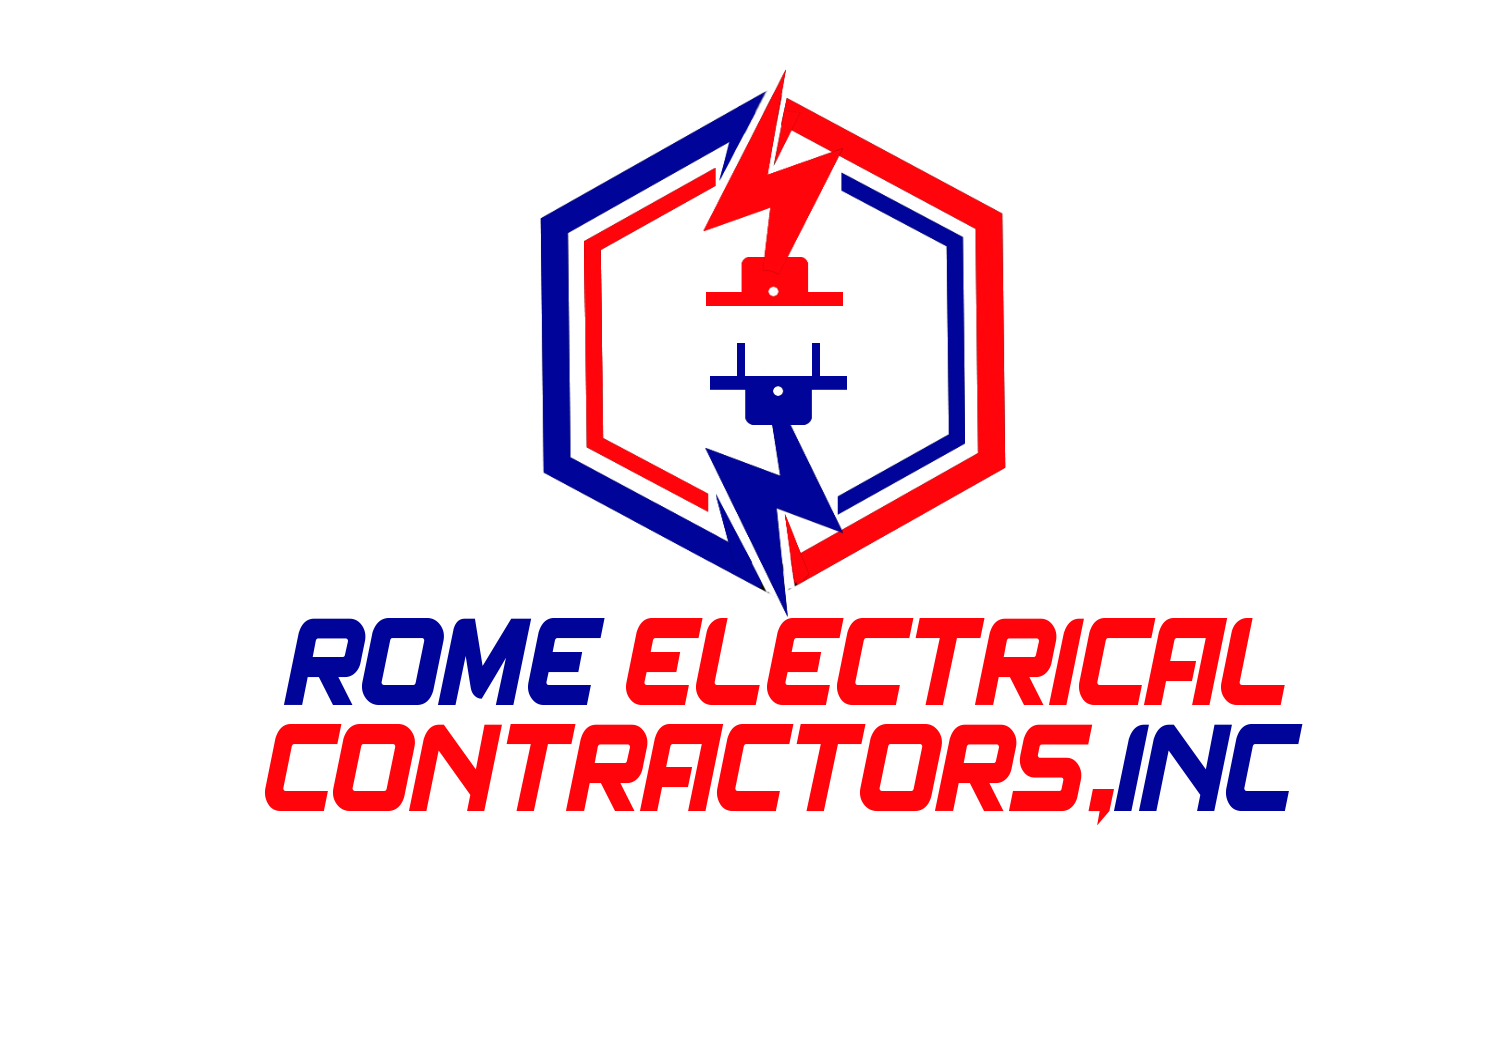 Rome Electrical